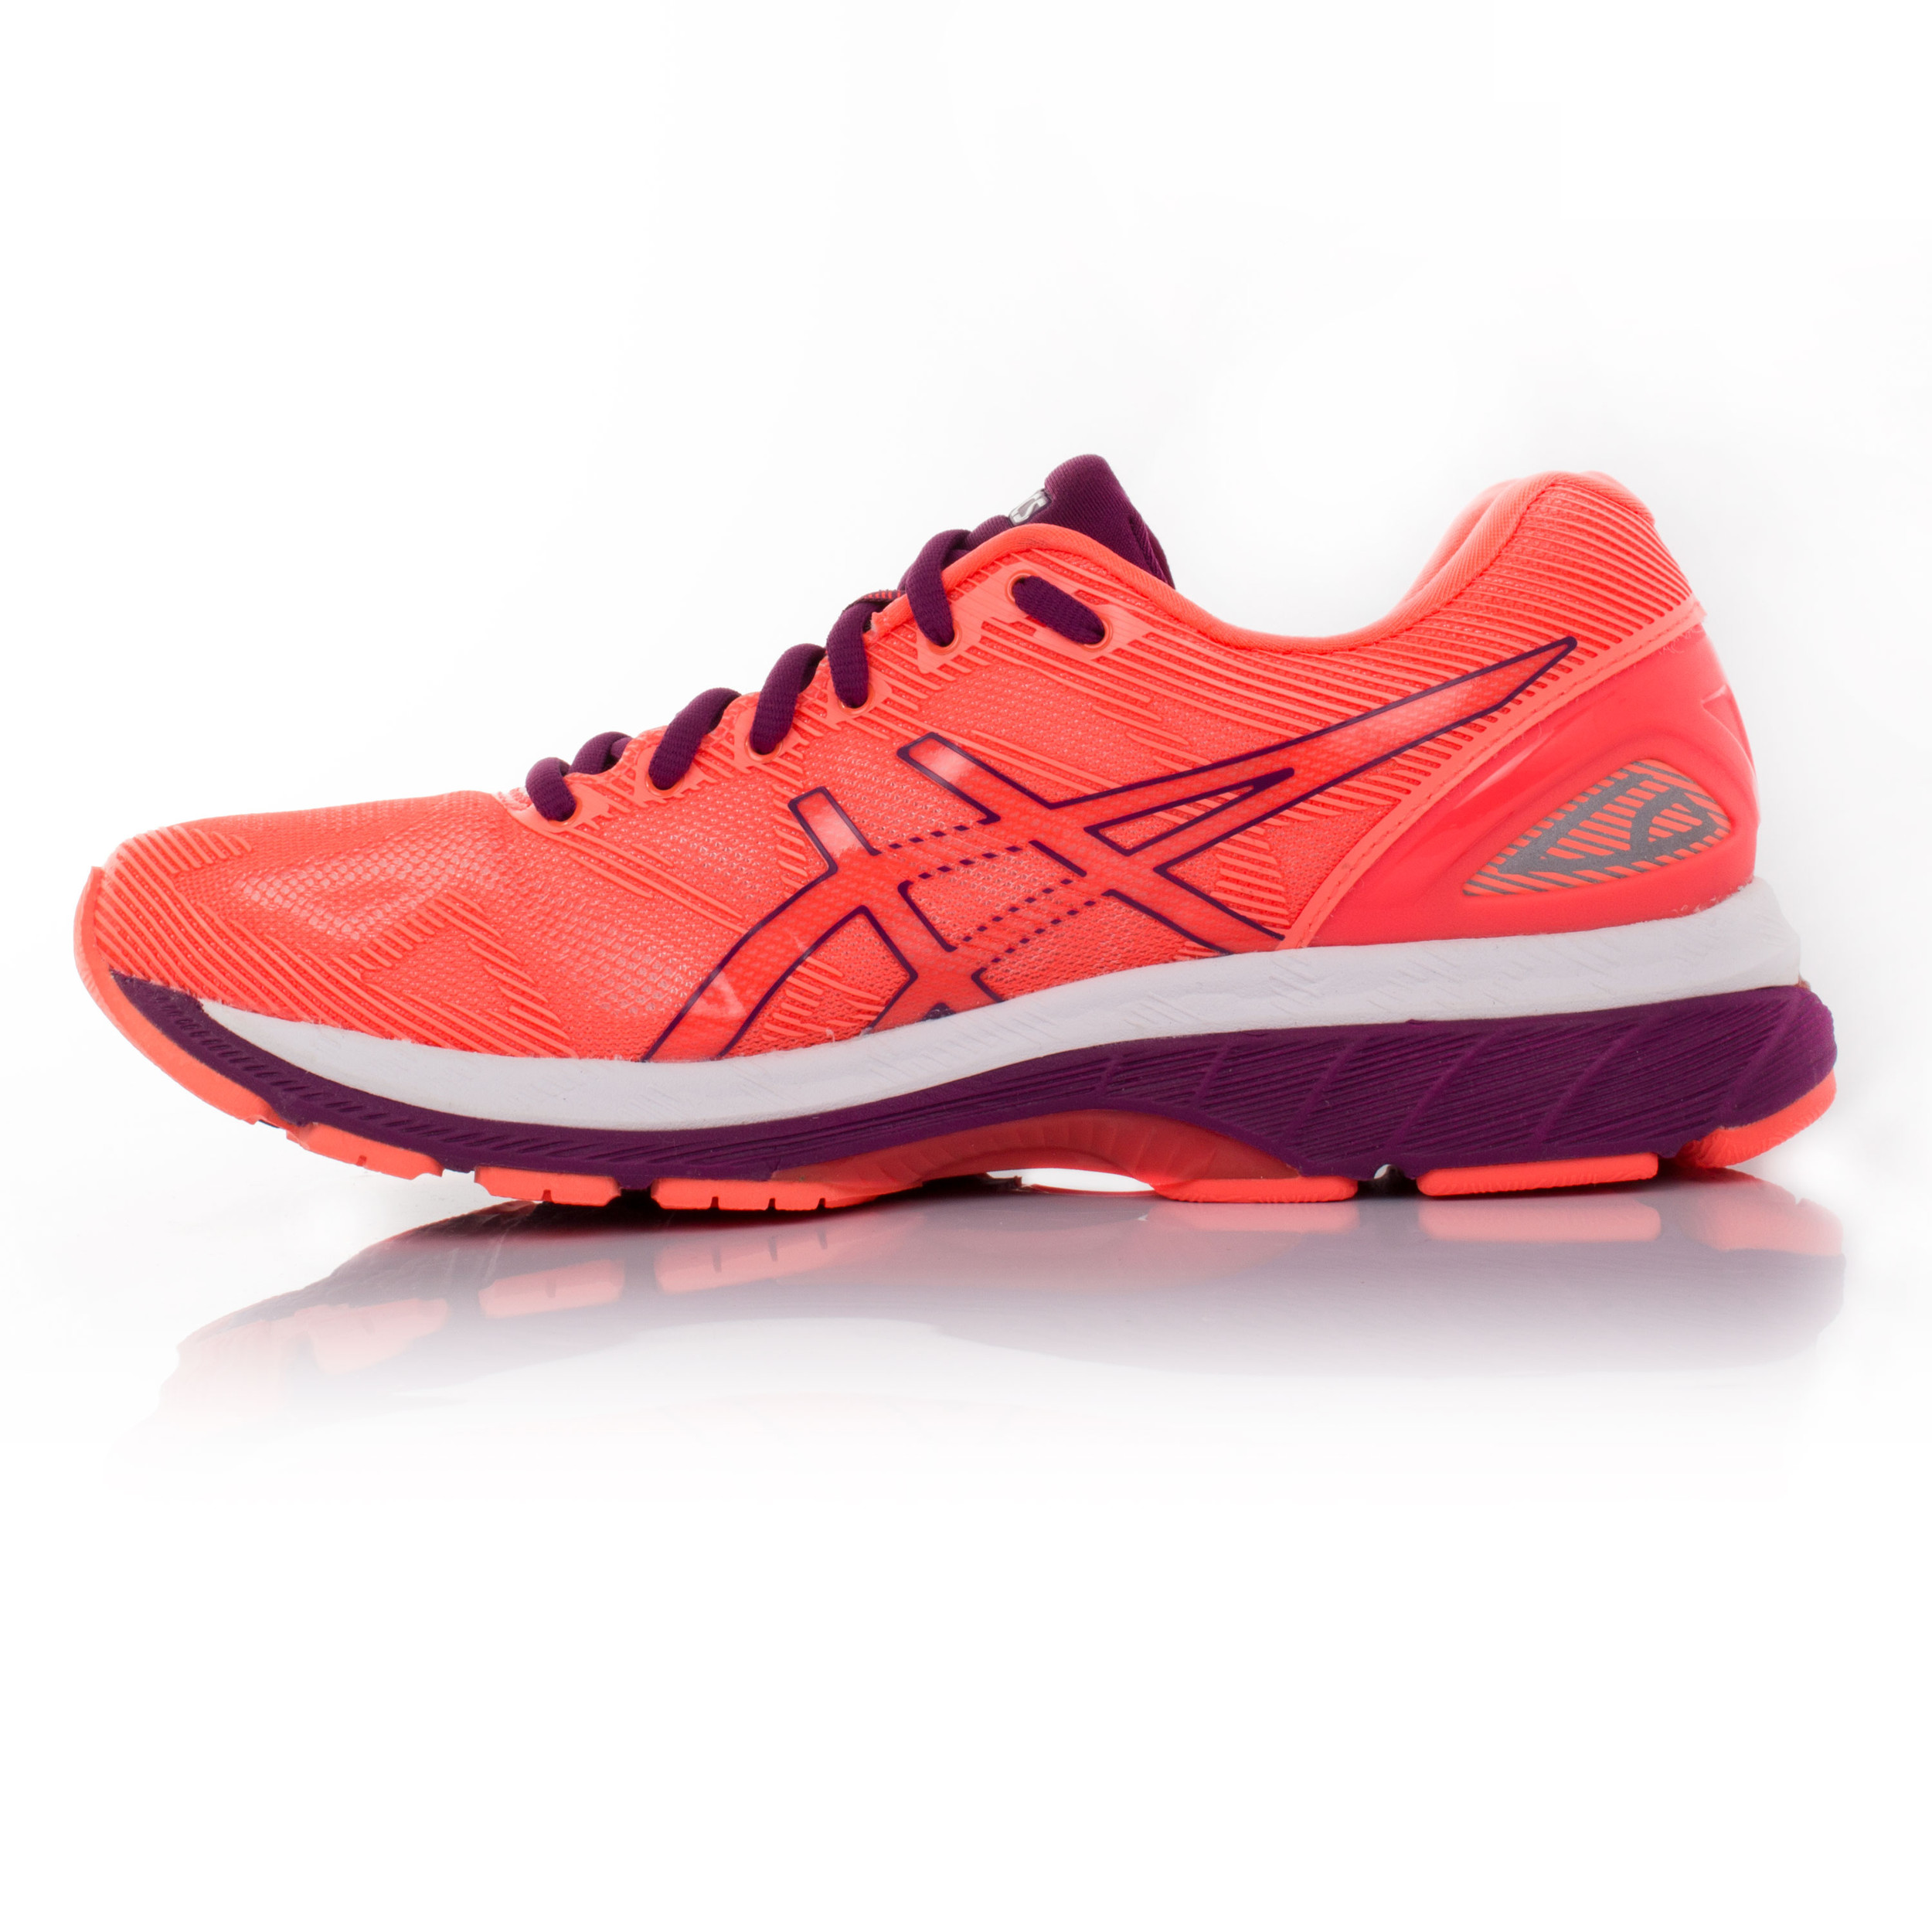 the latest 15829 aa3ba Details about Asics Gel Nimbus 19 Womens Orange Pink Cushioned Running  Fitness Shoes Trainers